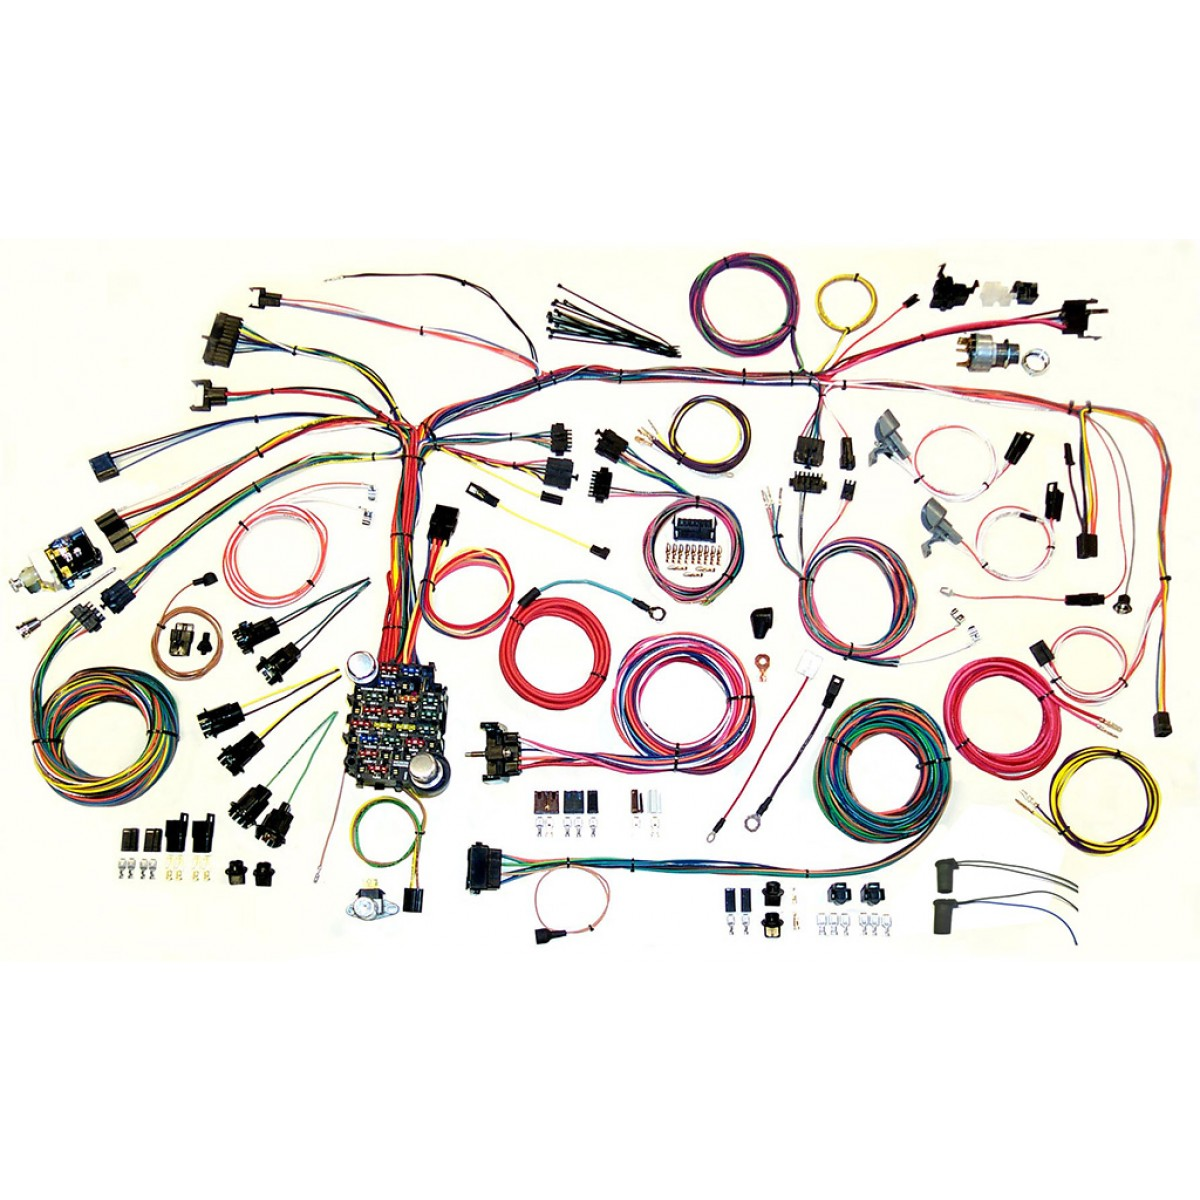 Complete Wiring Harness Kit - 1967-1968 Firebird Part# 500886